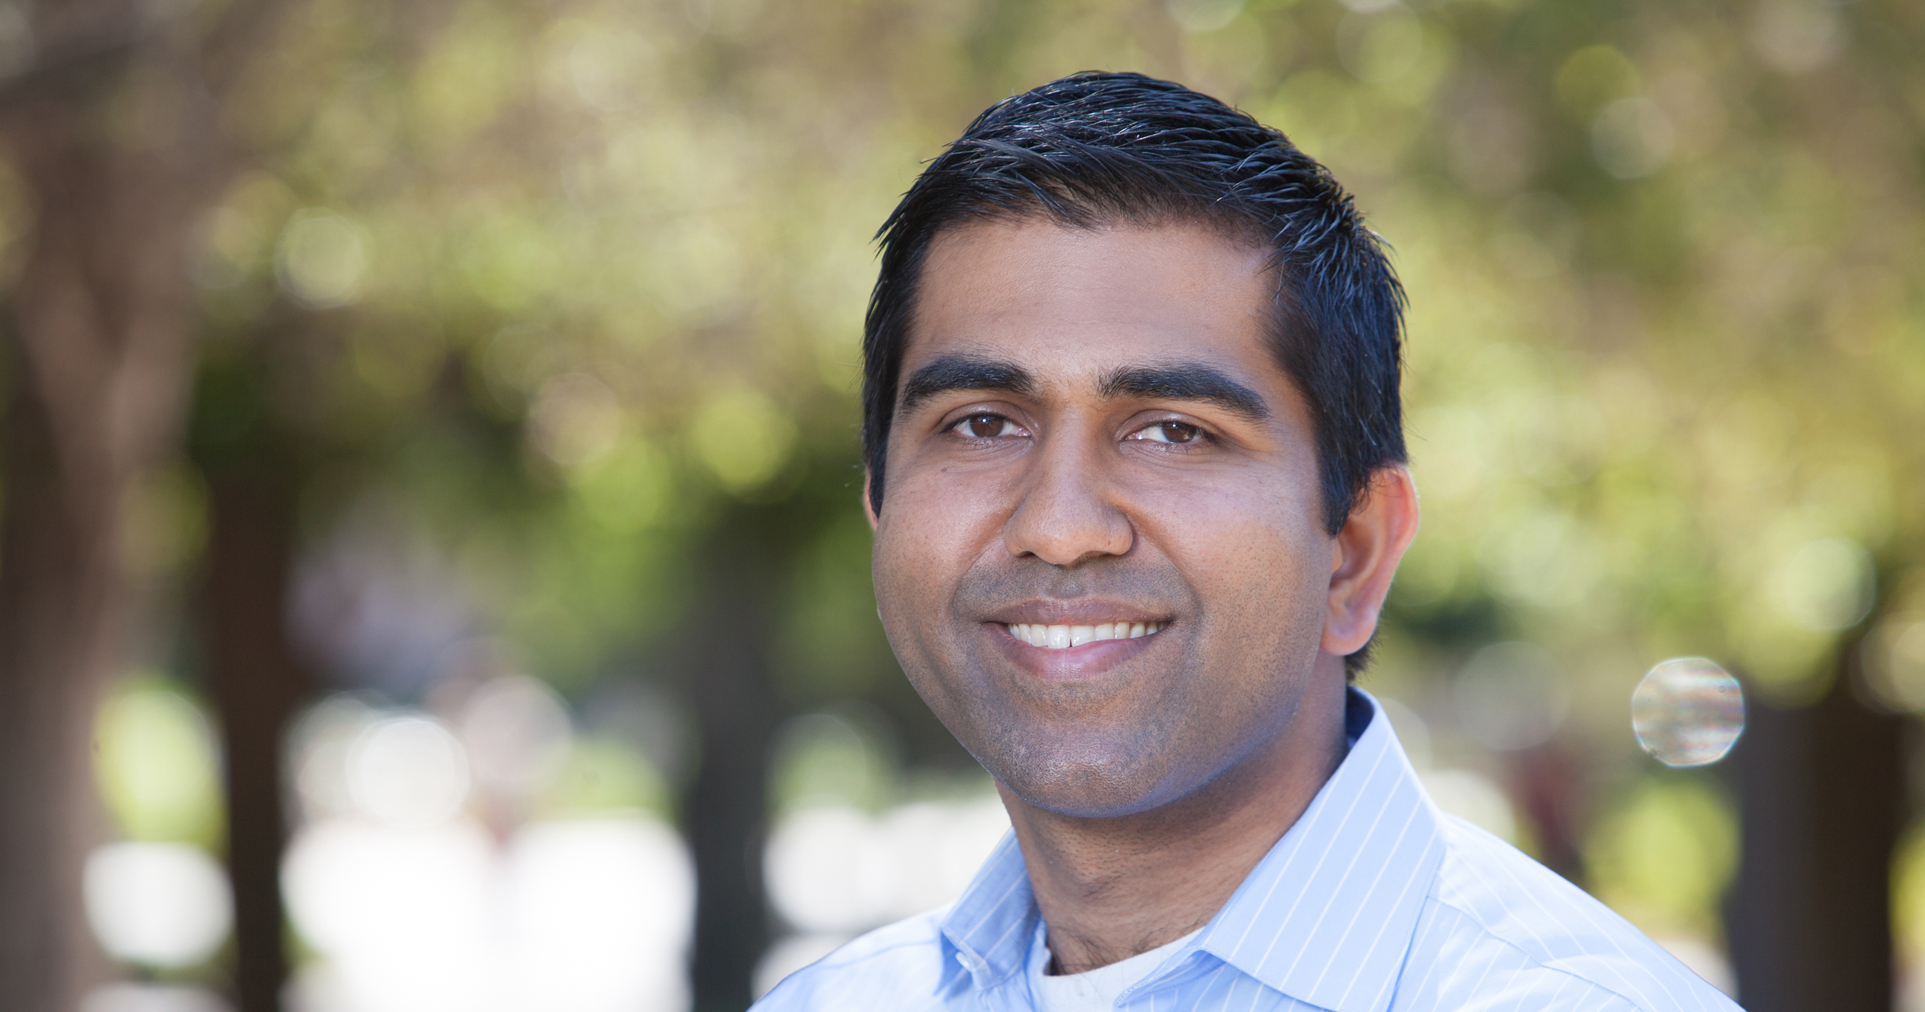 Neil Malhotra, co-director of Stanford's Center for Social Innovation